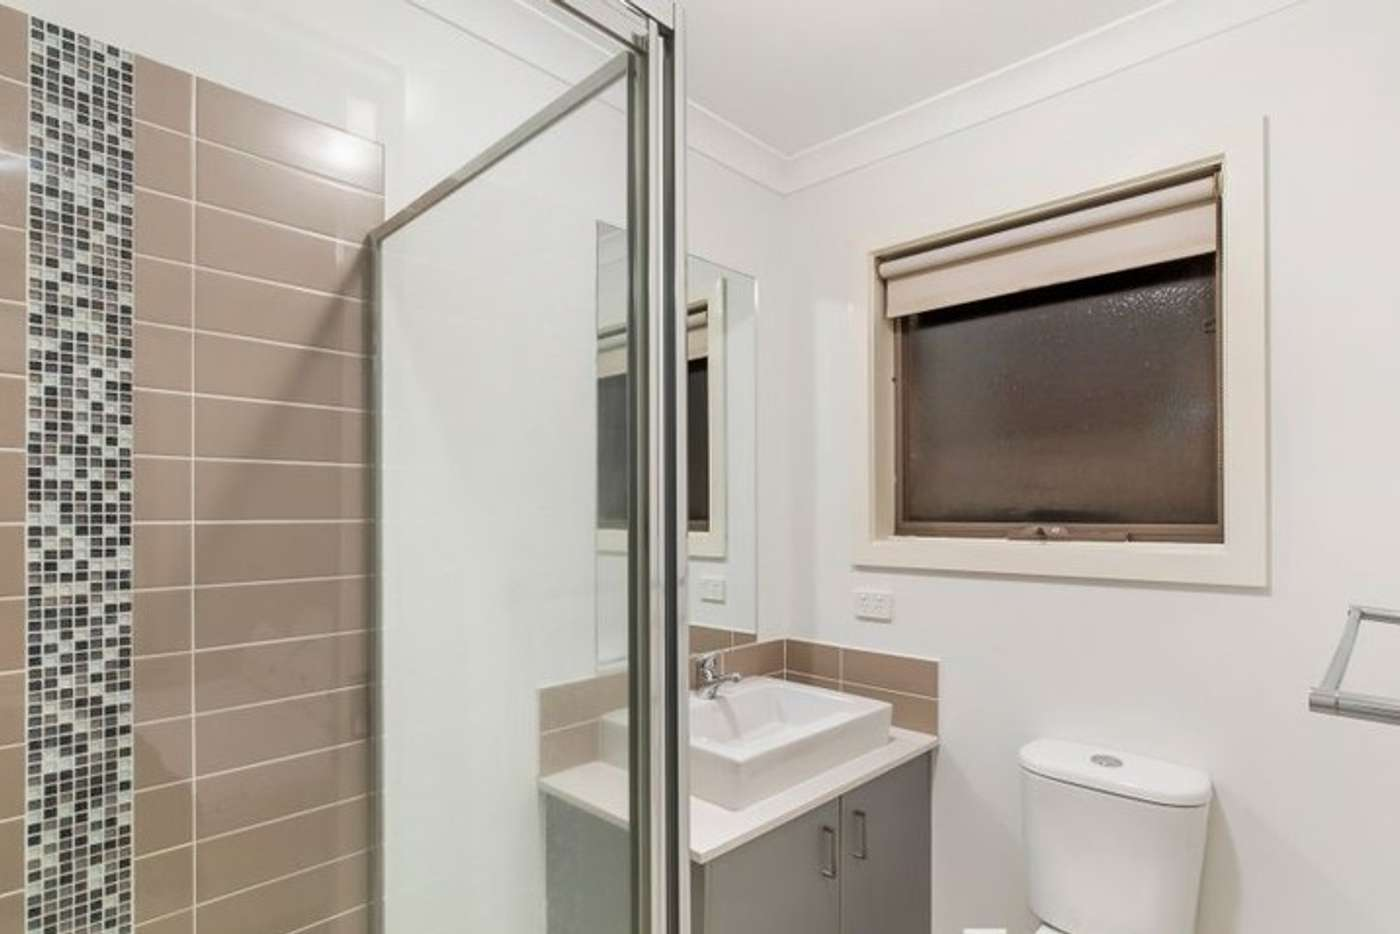 Sixth view of Homely house listing, 18 Talliver Terrace, Truganina VIC 3029